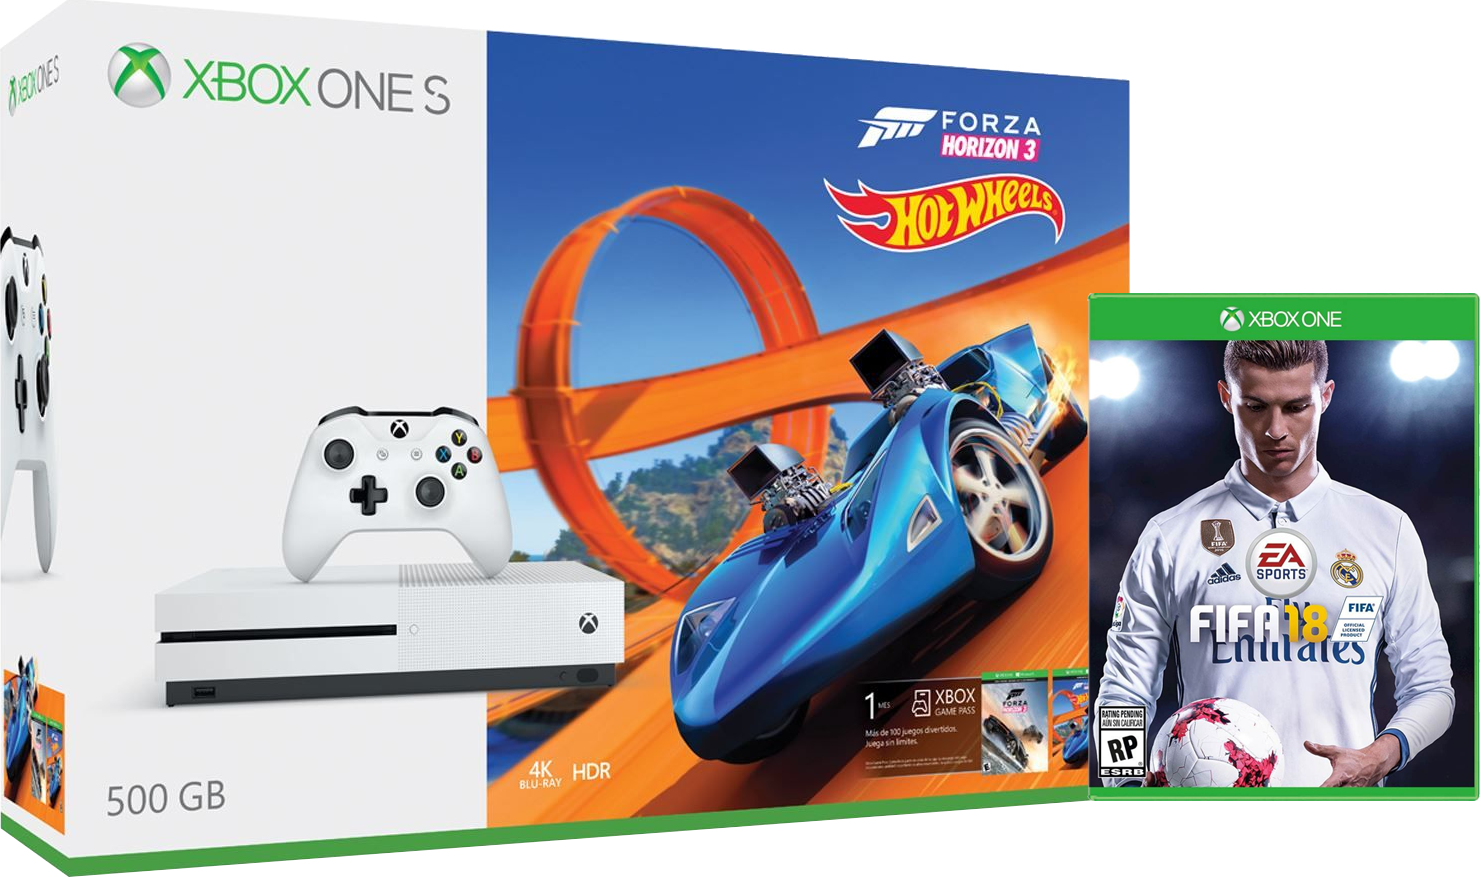 zap microsoft xbox one s forza horizon 3 hot wheels fifa 18. Black Bedroom Furniture Sets. Home Design Ideas